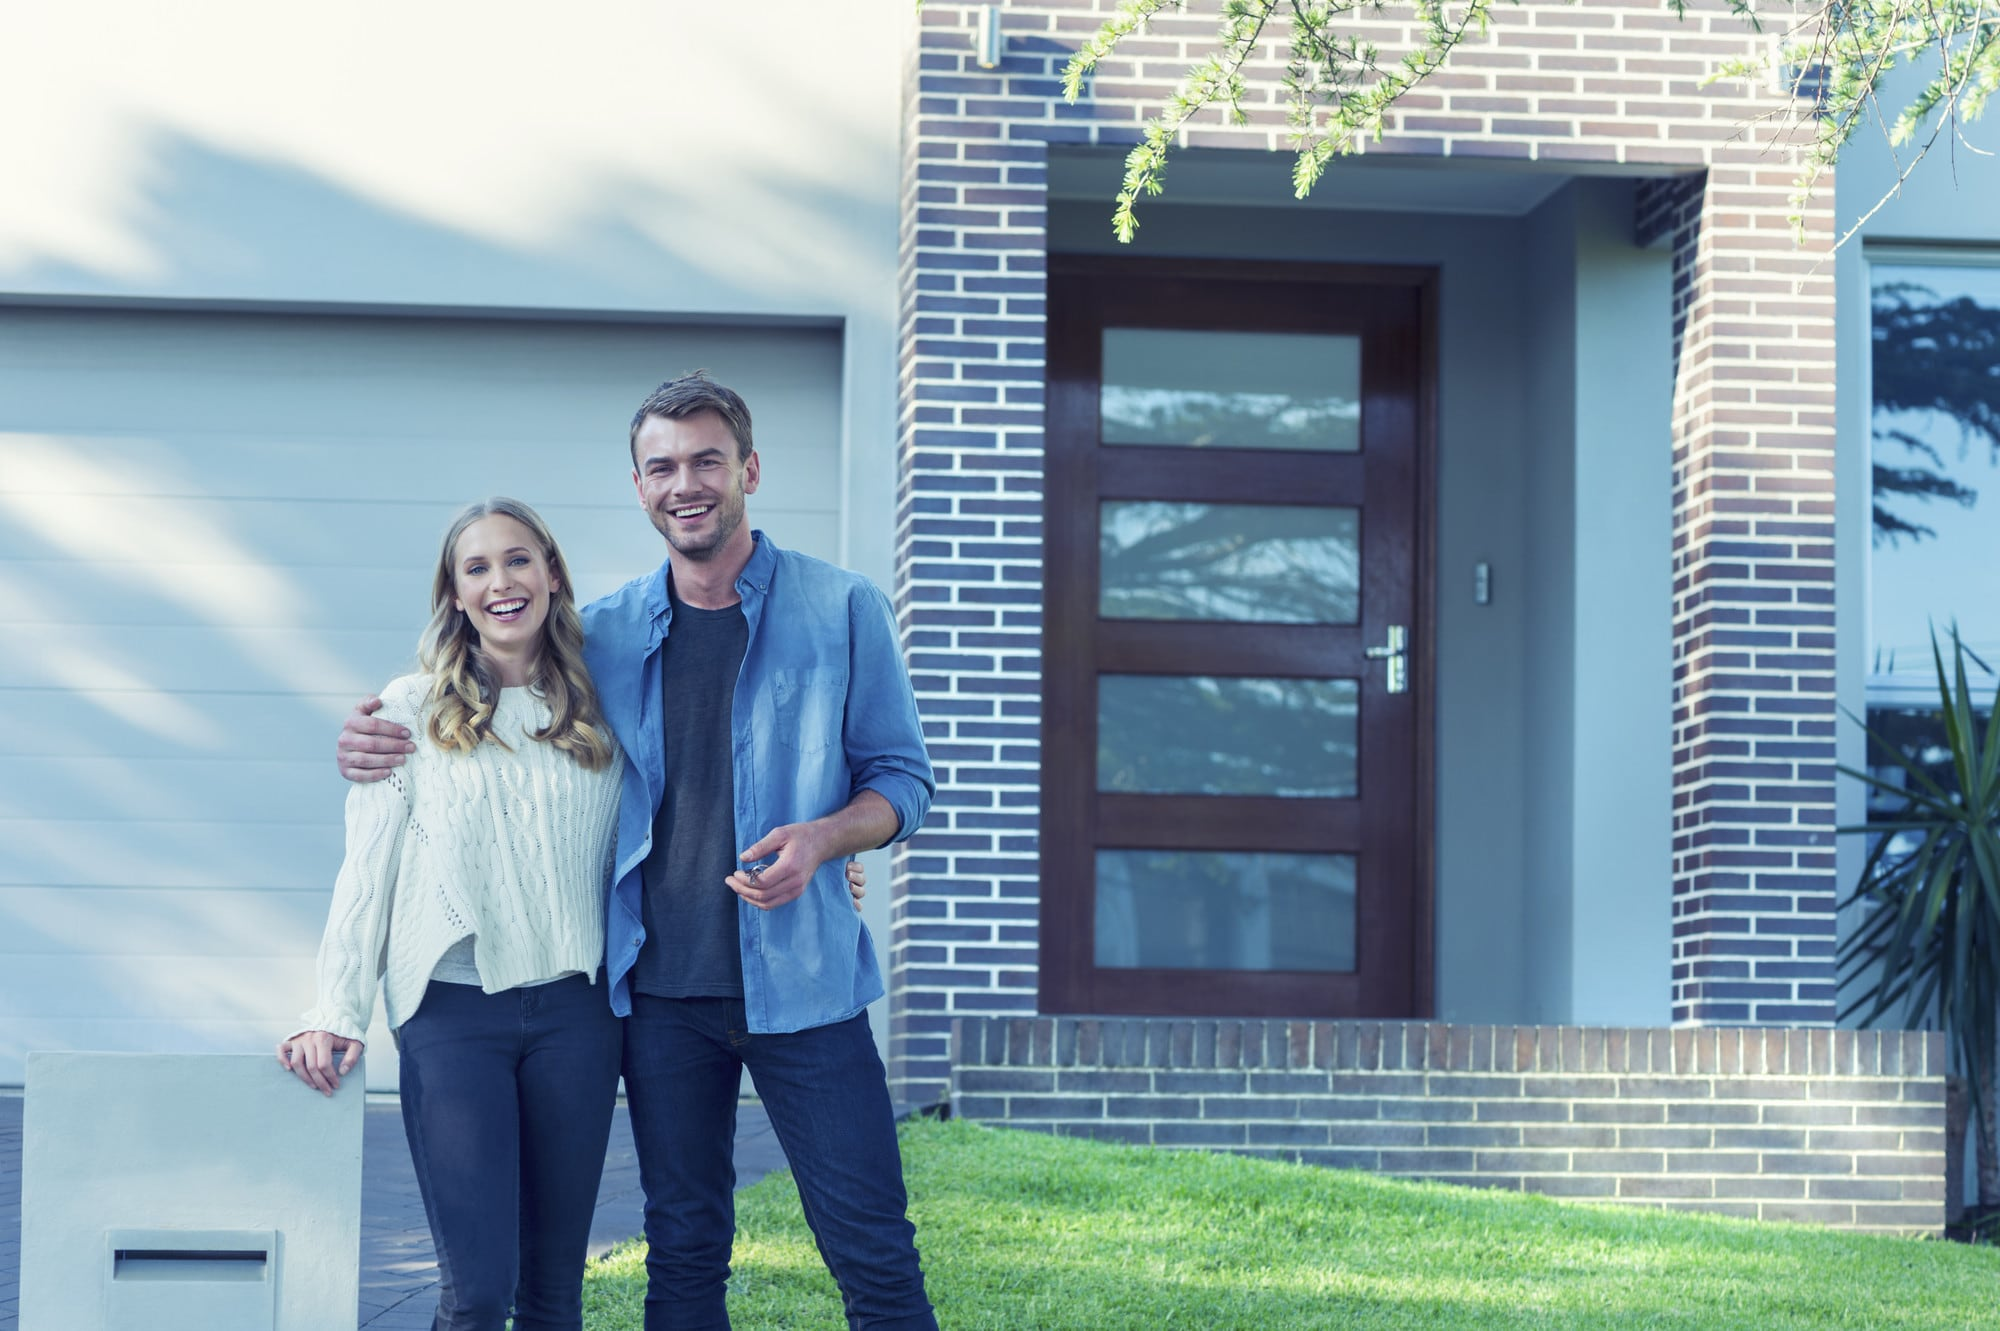 A young millennial couple standing in front of the home they've just purchased.